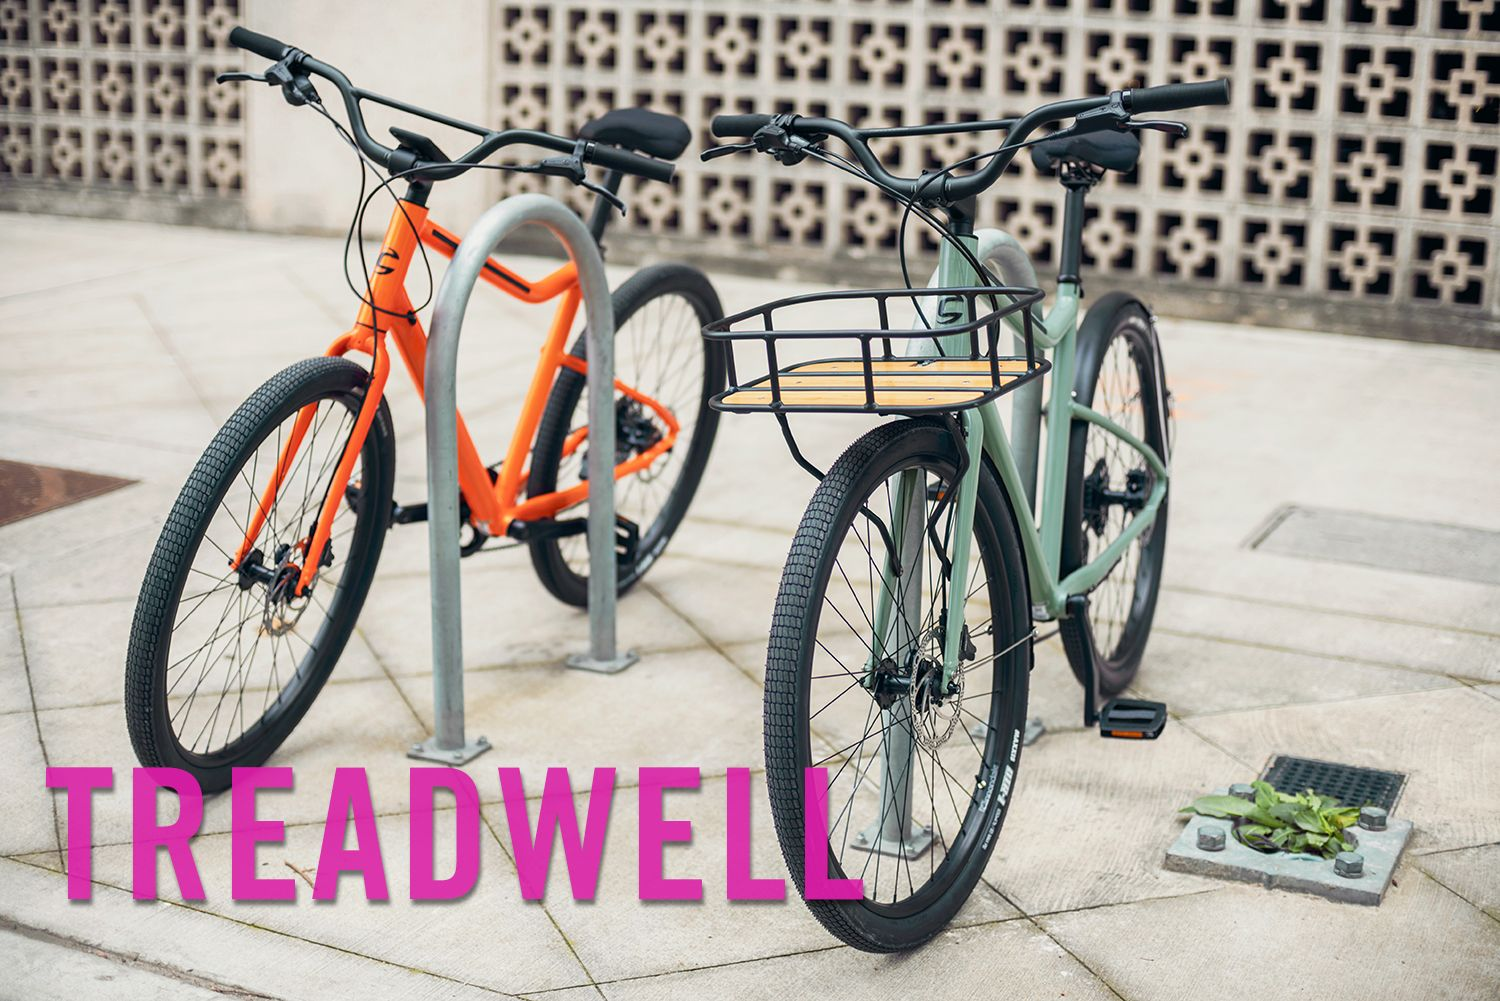 Cannondale Treadwell, Your Everyday Bike